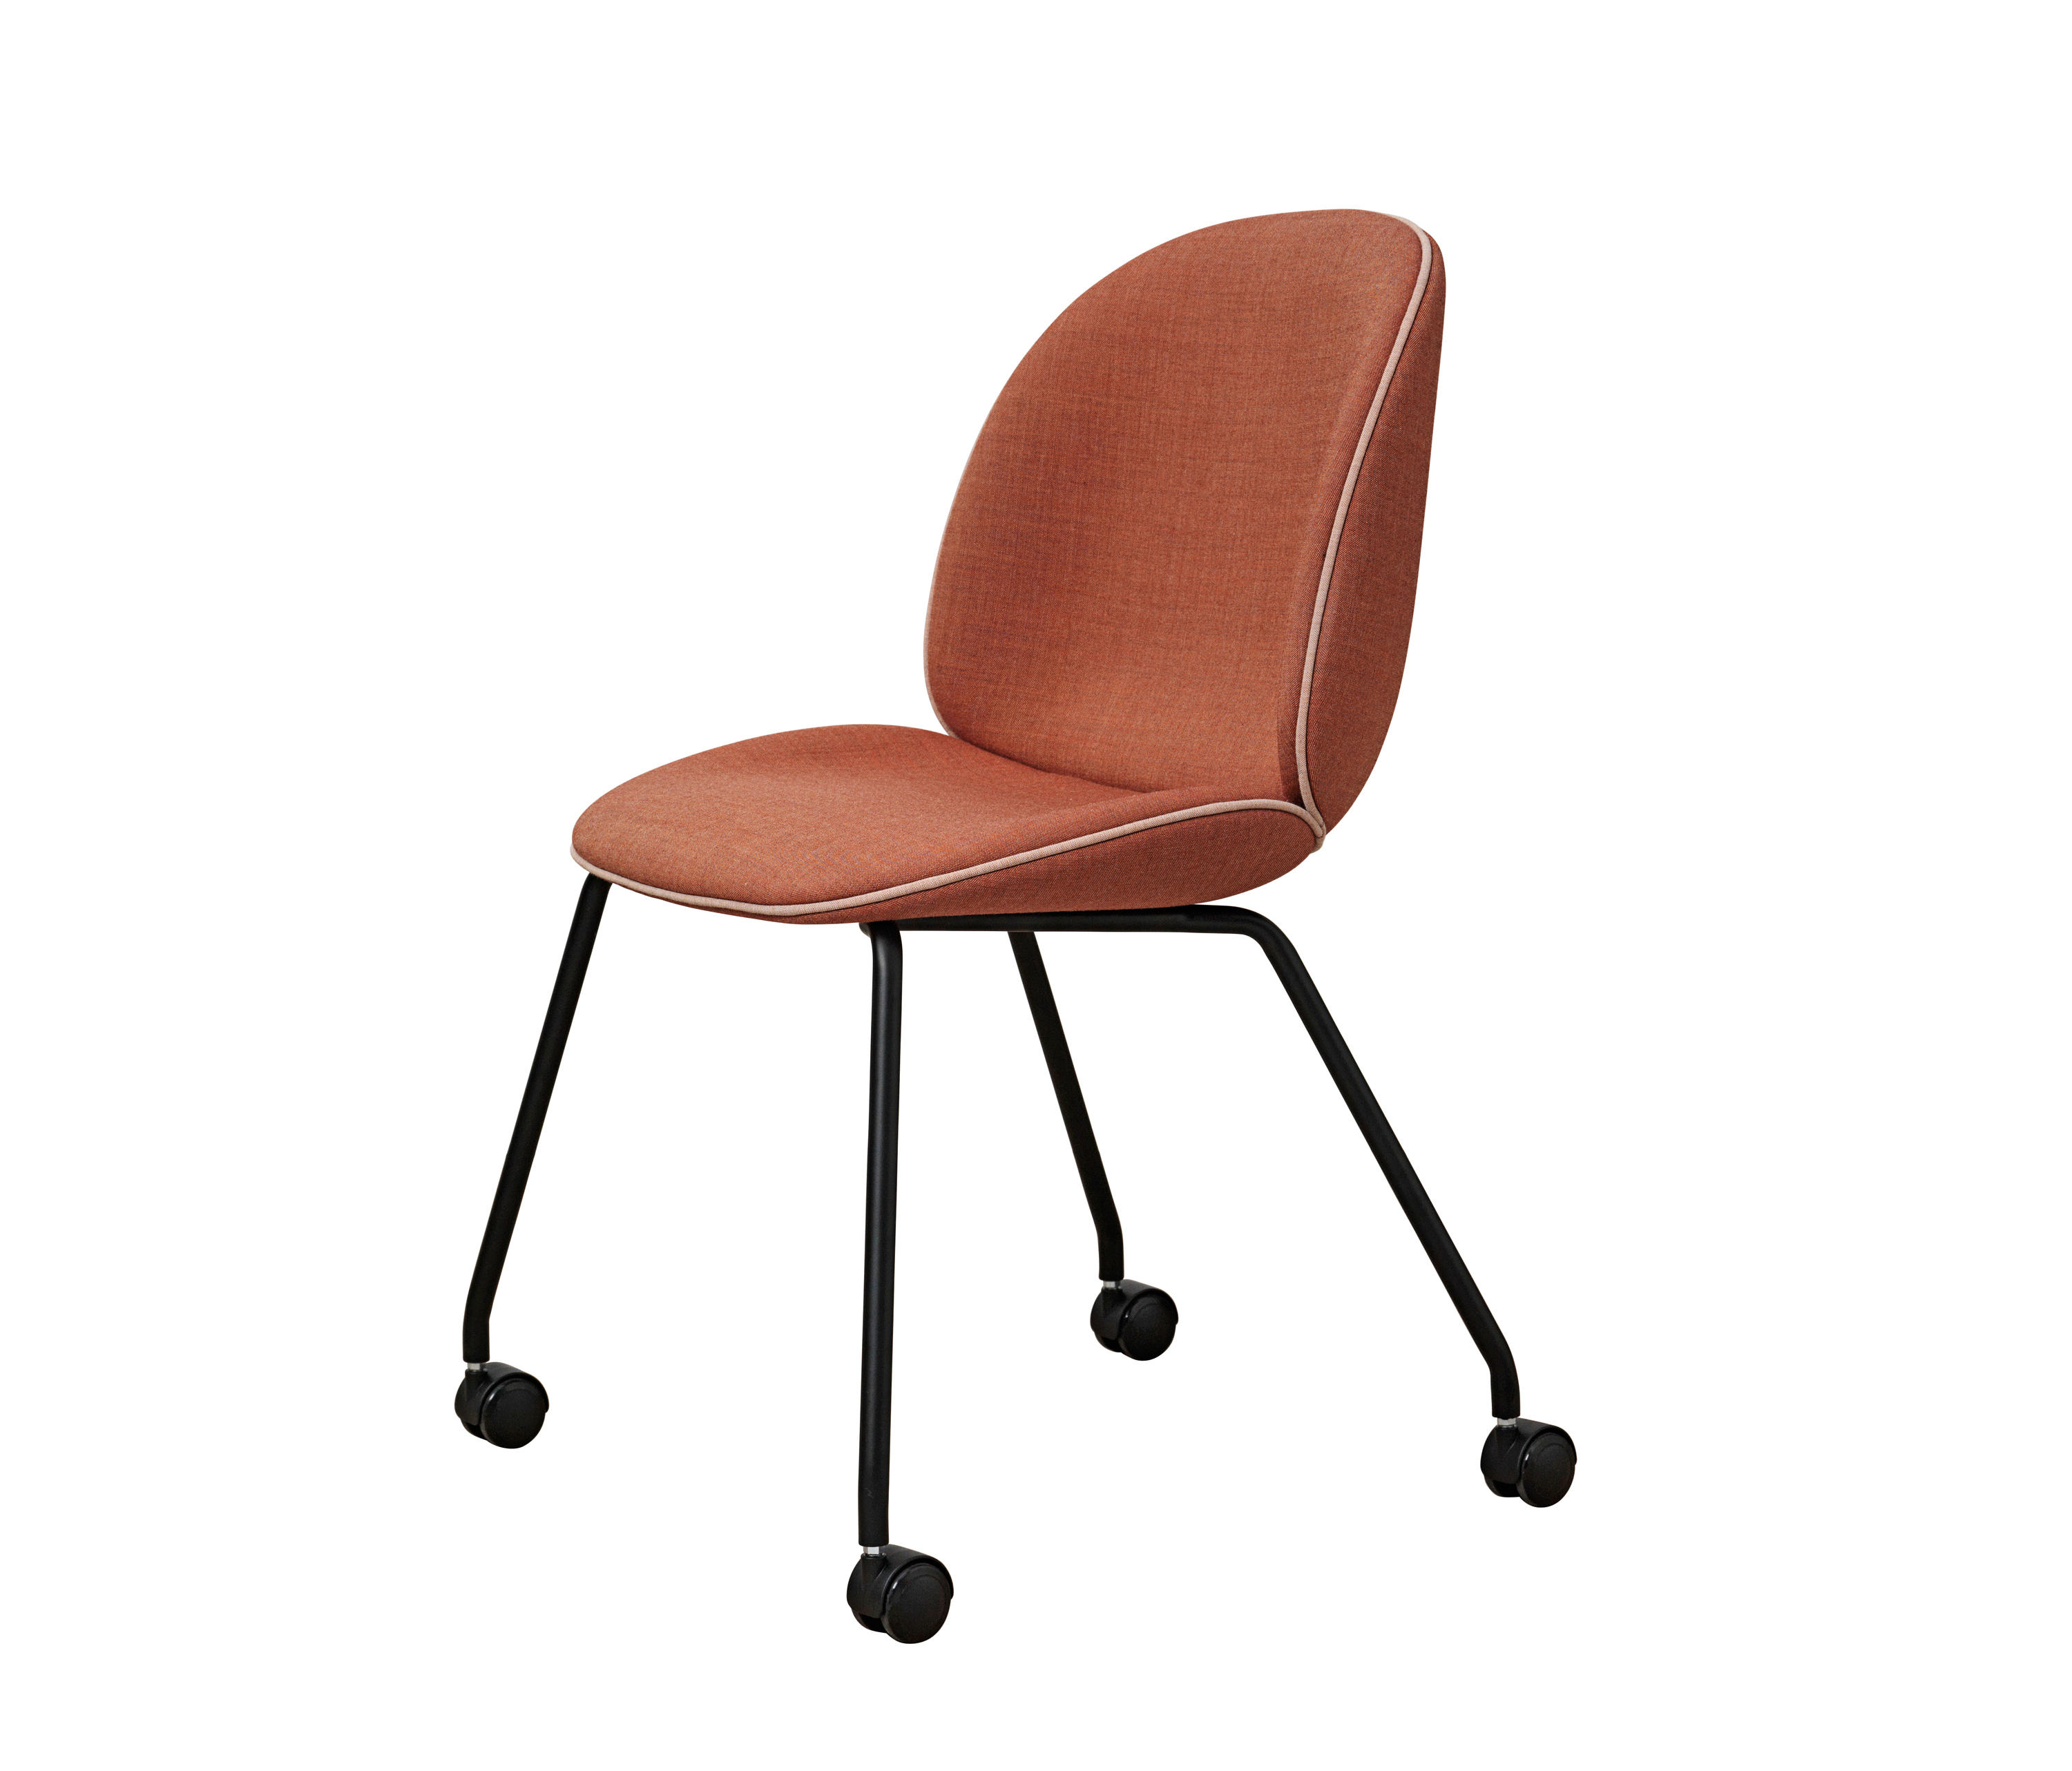 beetle castor chair chairs from gubi architonic. Black Bedroom Furniture Sets. Home Design Ideas